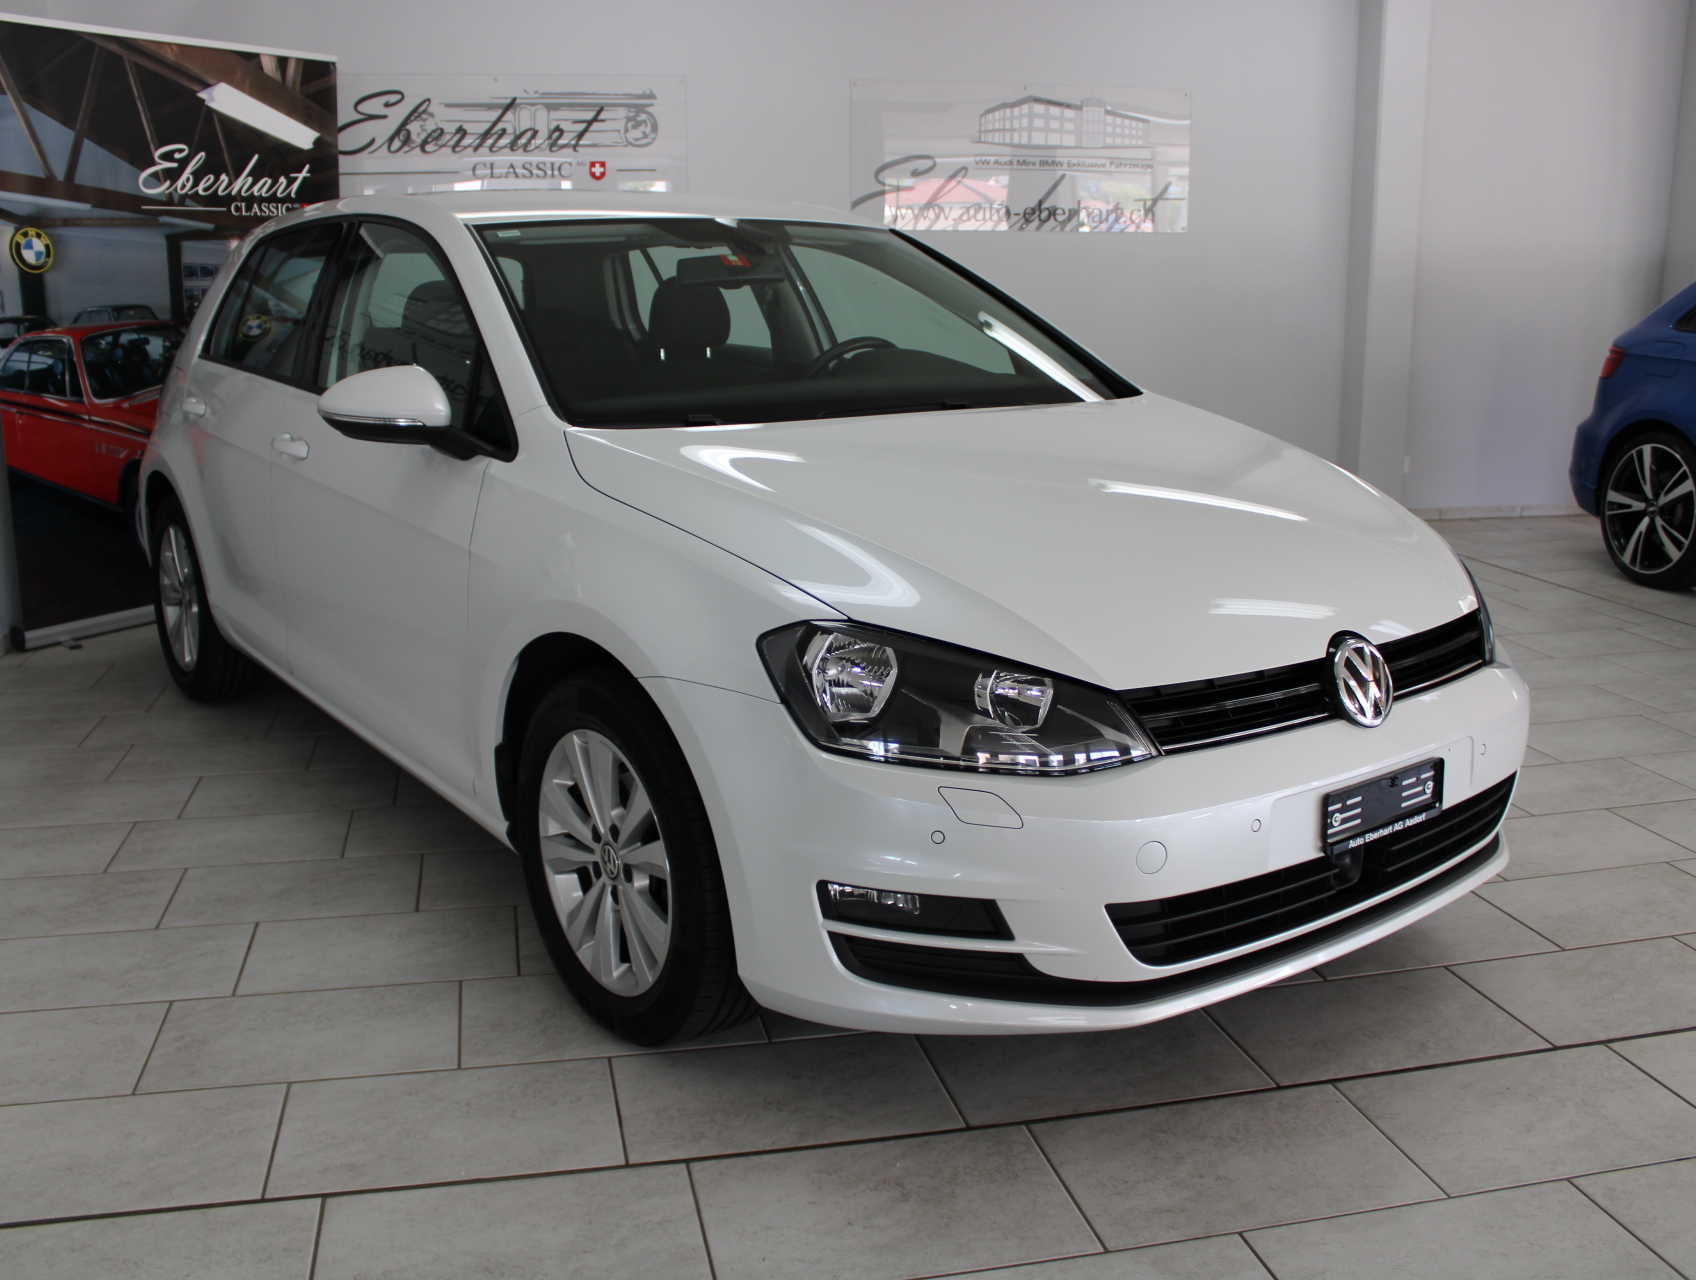 saloon VW Golf 2.0 TDI